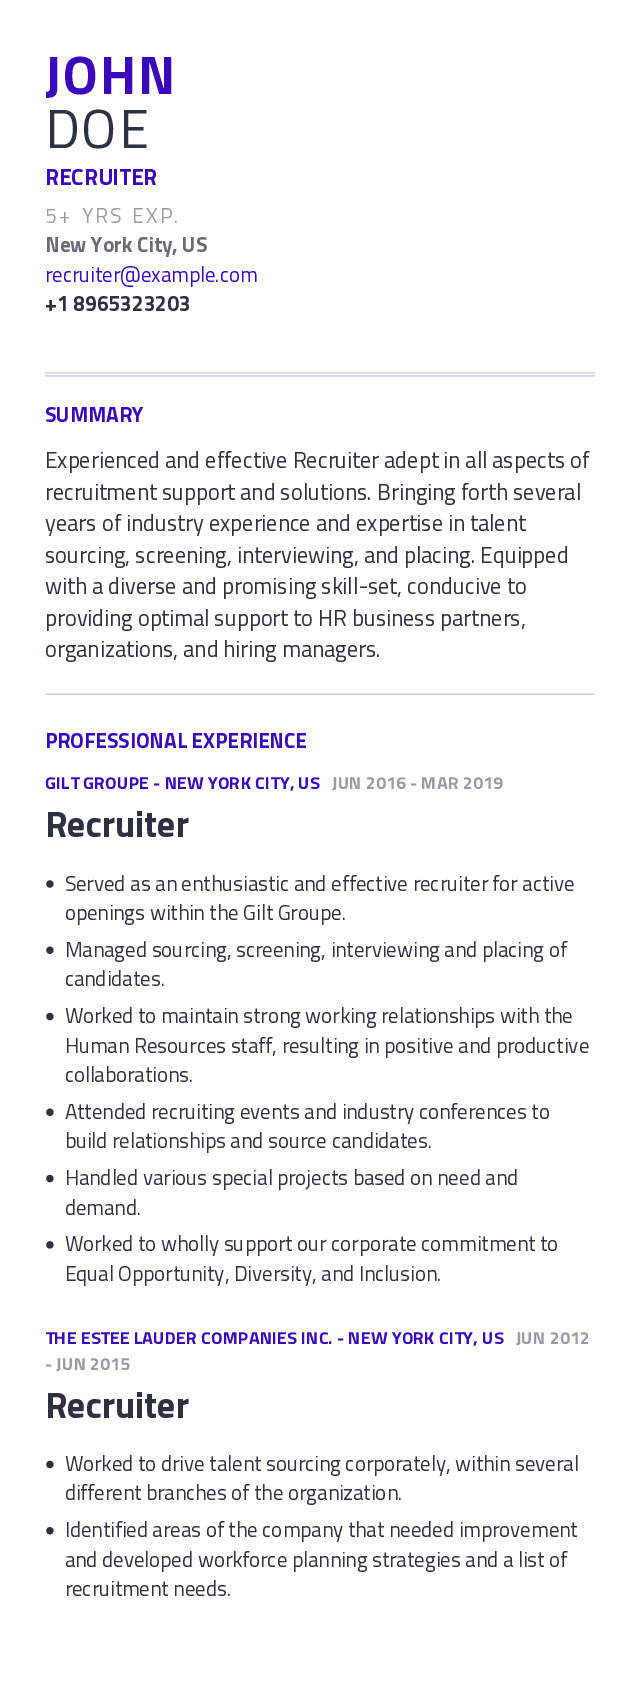 Recruiter Mobile Resume Example